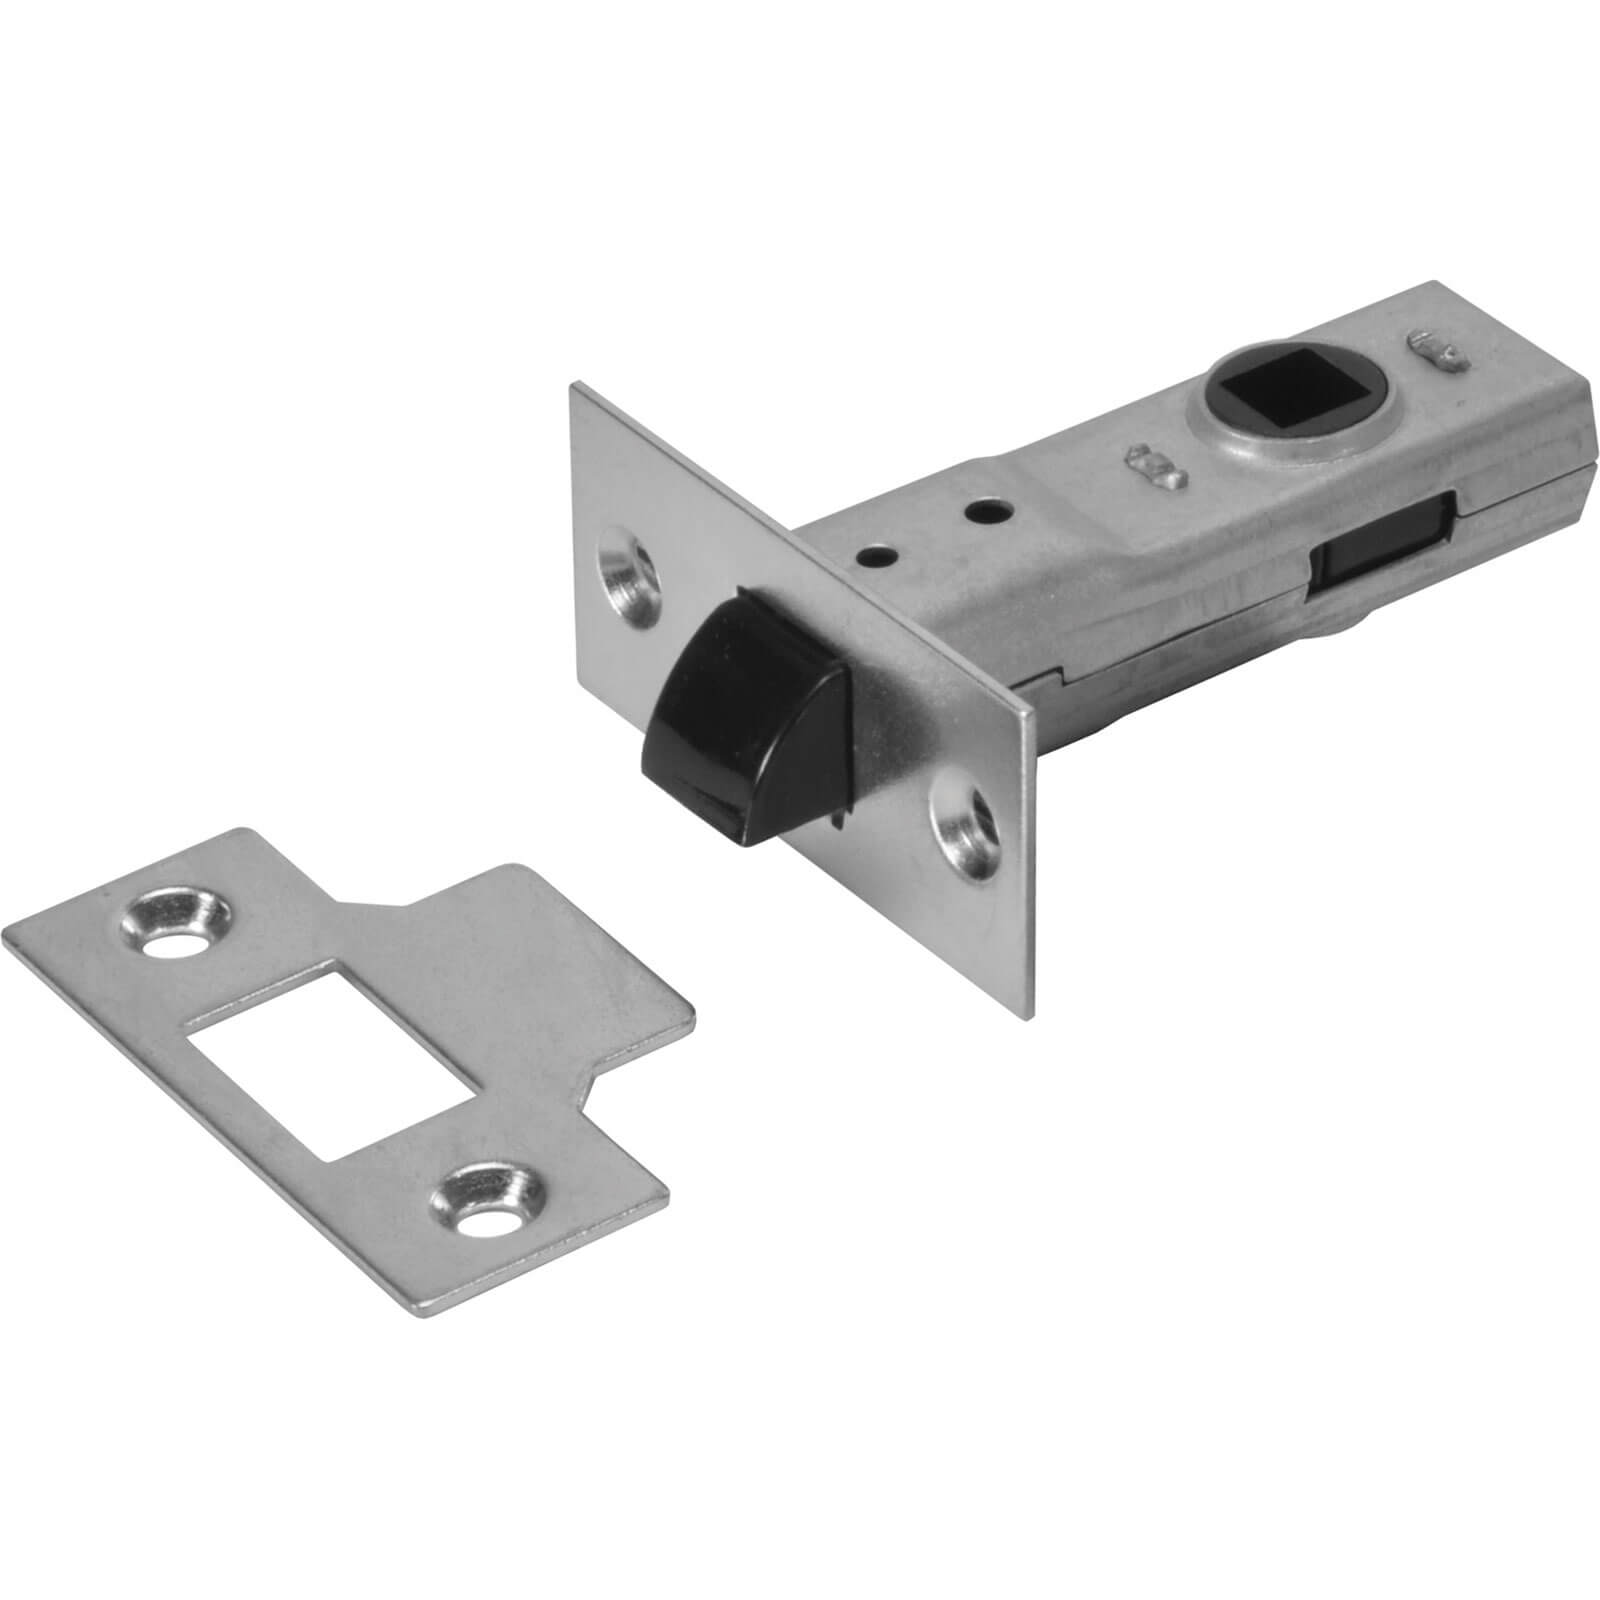 Tooled Up/Ironmongery & Security/Ironmongery/Union J2600 Essentials Polished Zinc Plated Tubular Mortice Latch 65mm / 2.5""